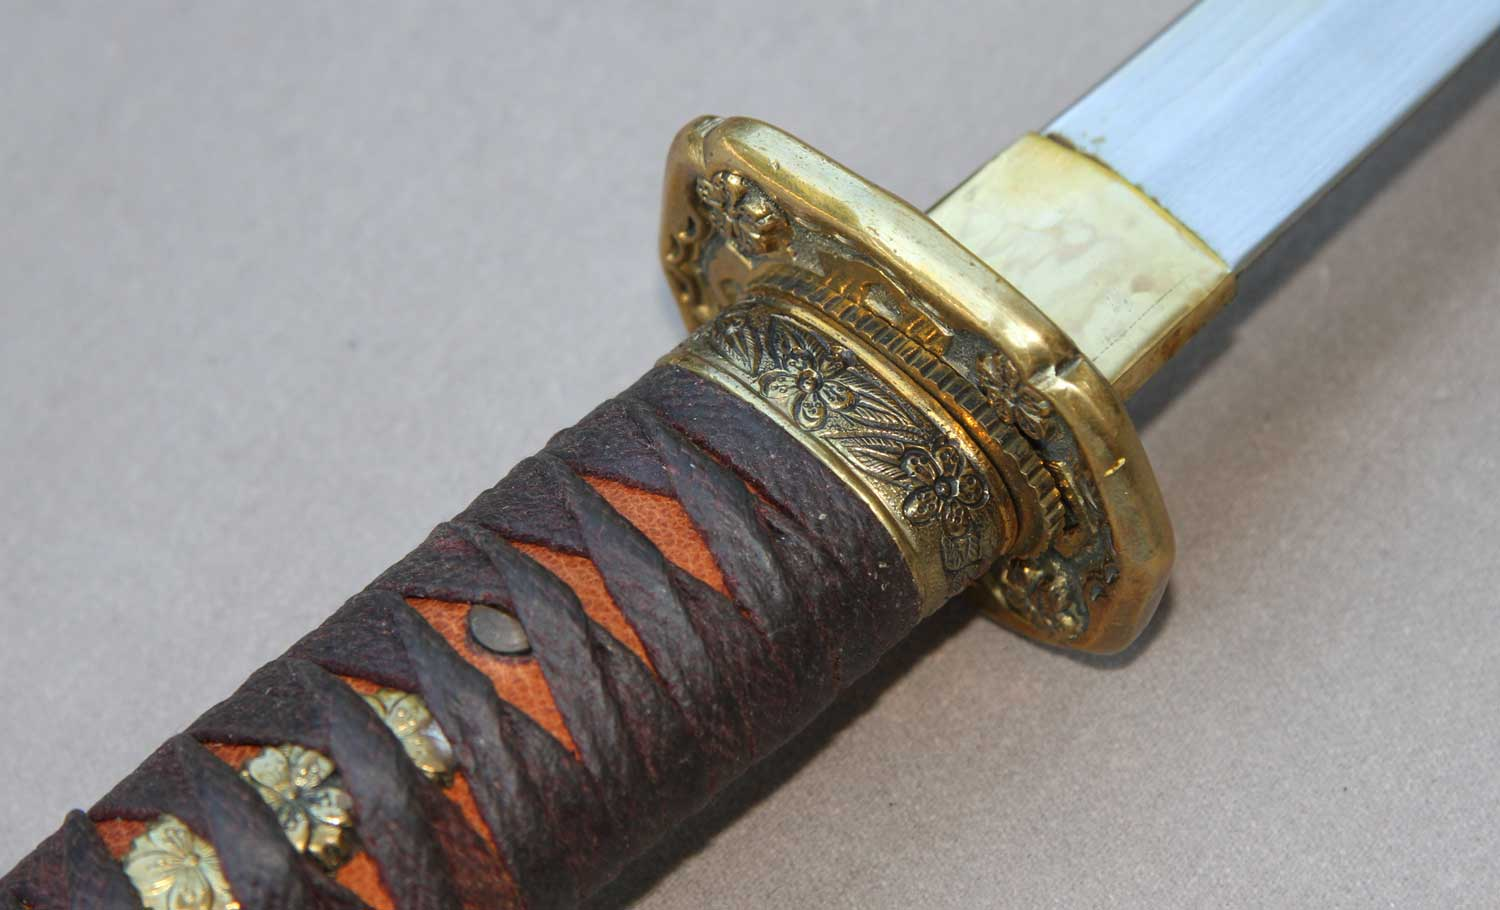 Japanese, Officer's Shin-gunto Sword